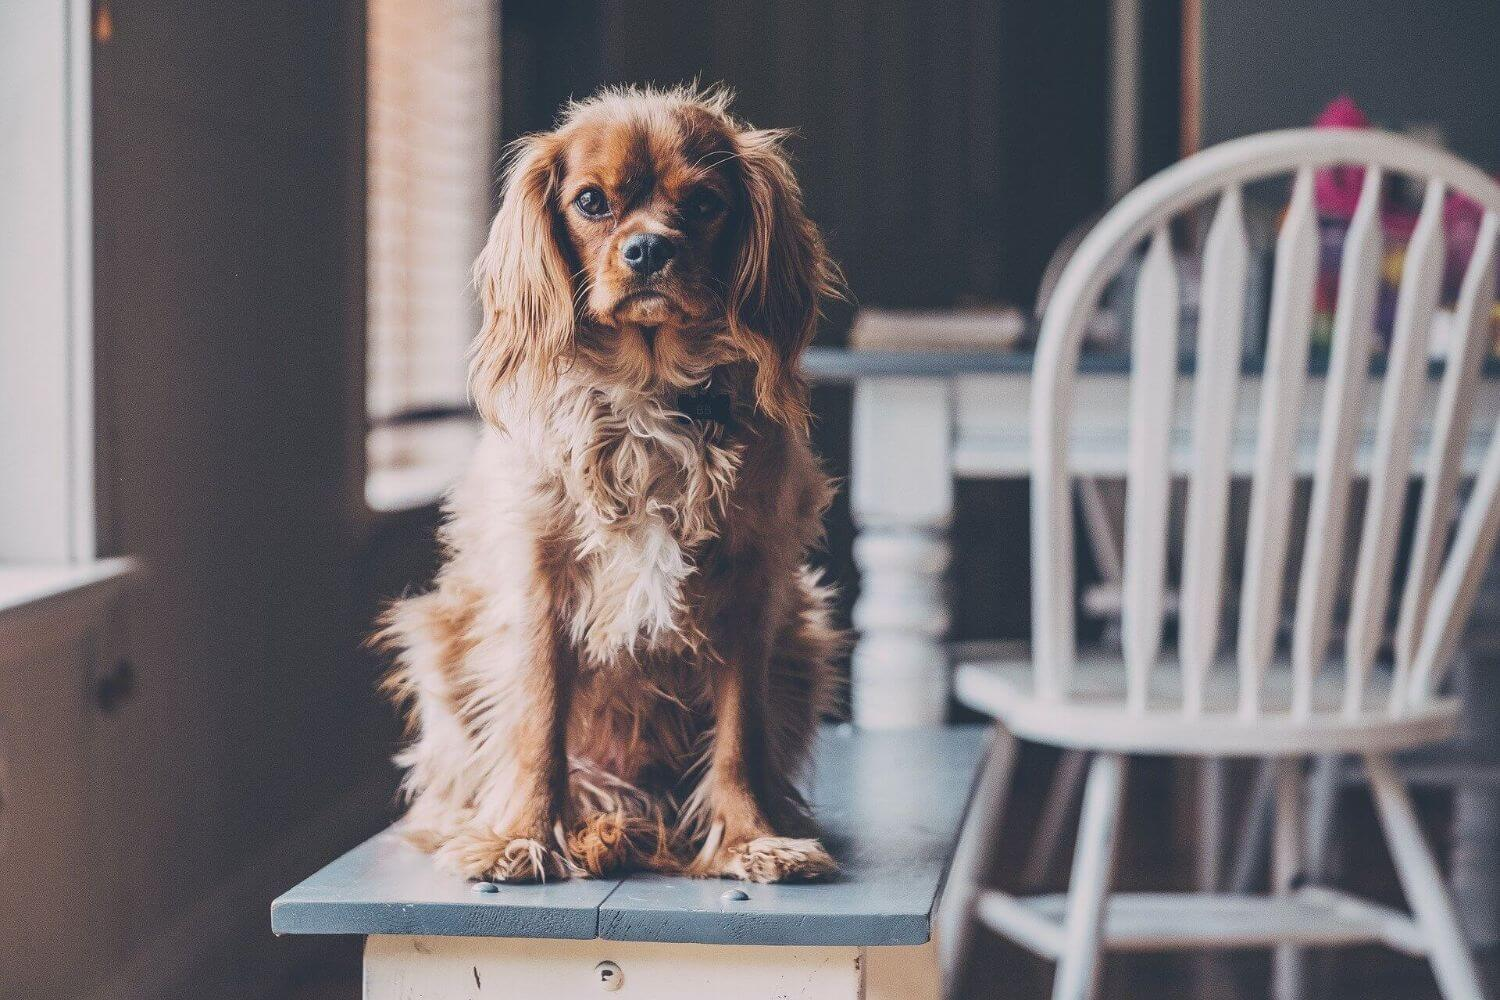 what should you do if your dog gets up on the table?